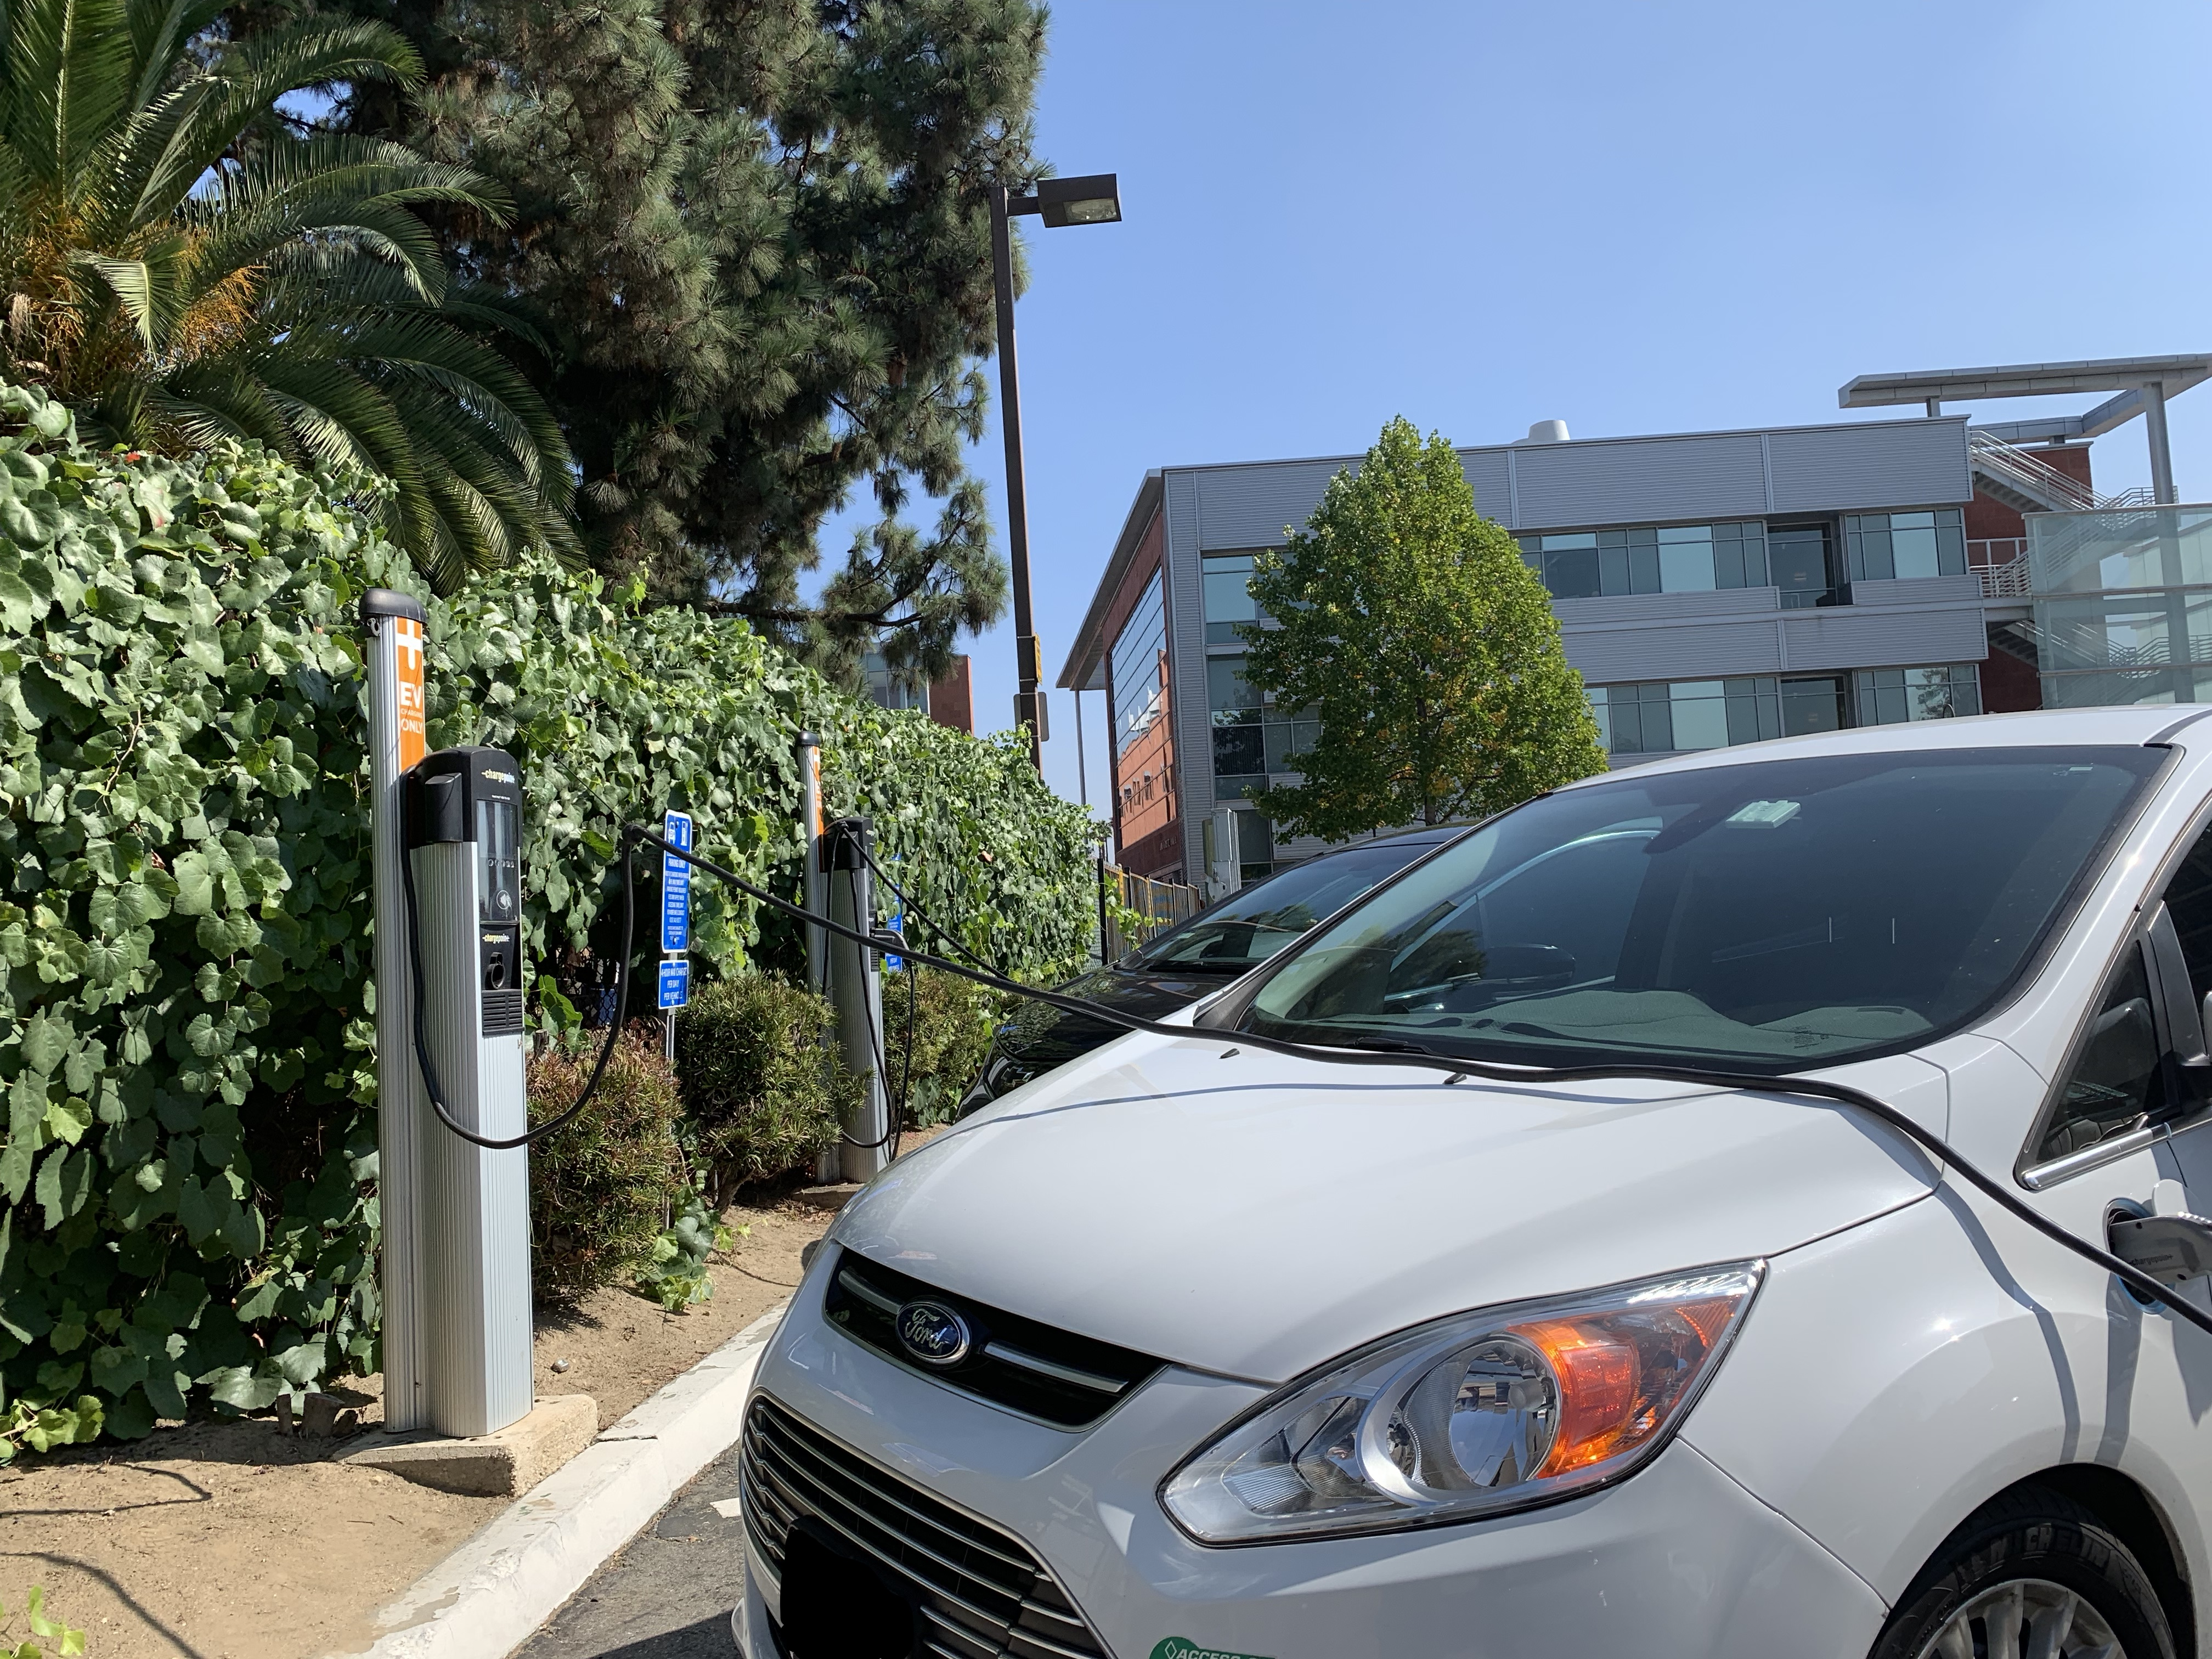 Cal State LA Electric Vehicle Charging Stations in Lot 3